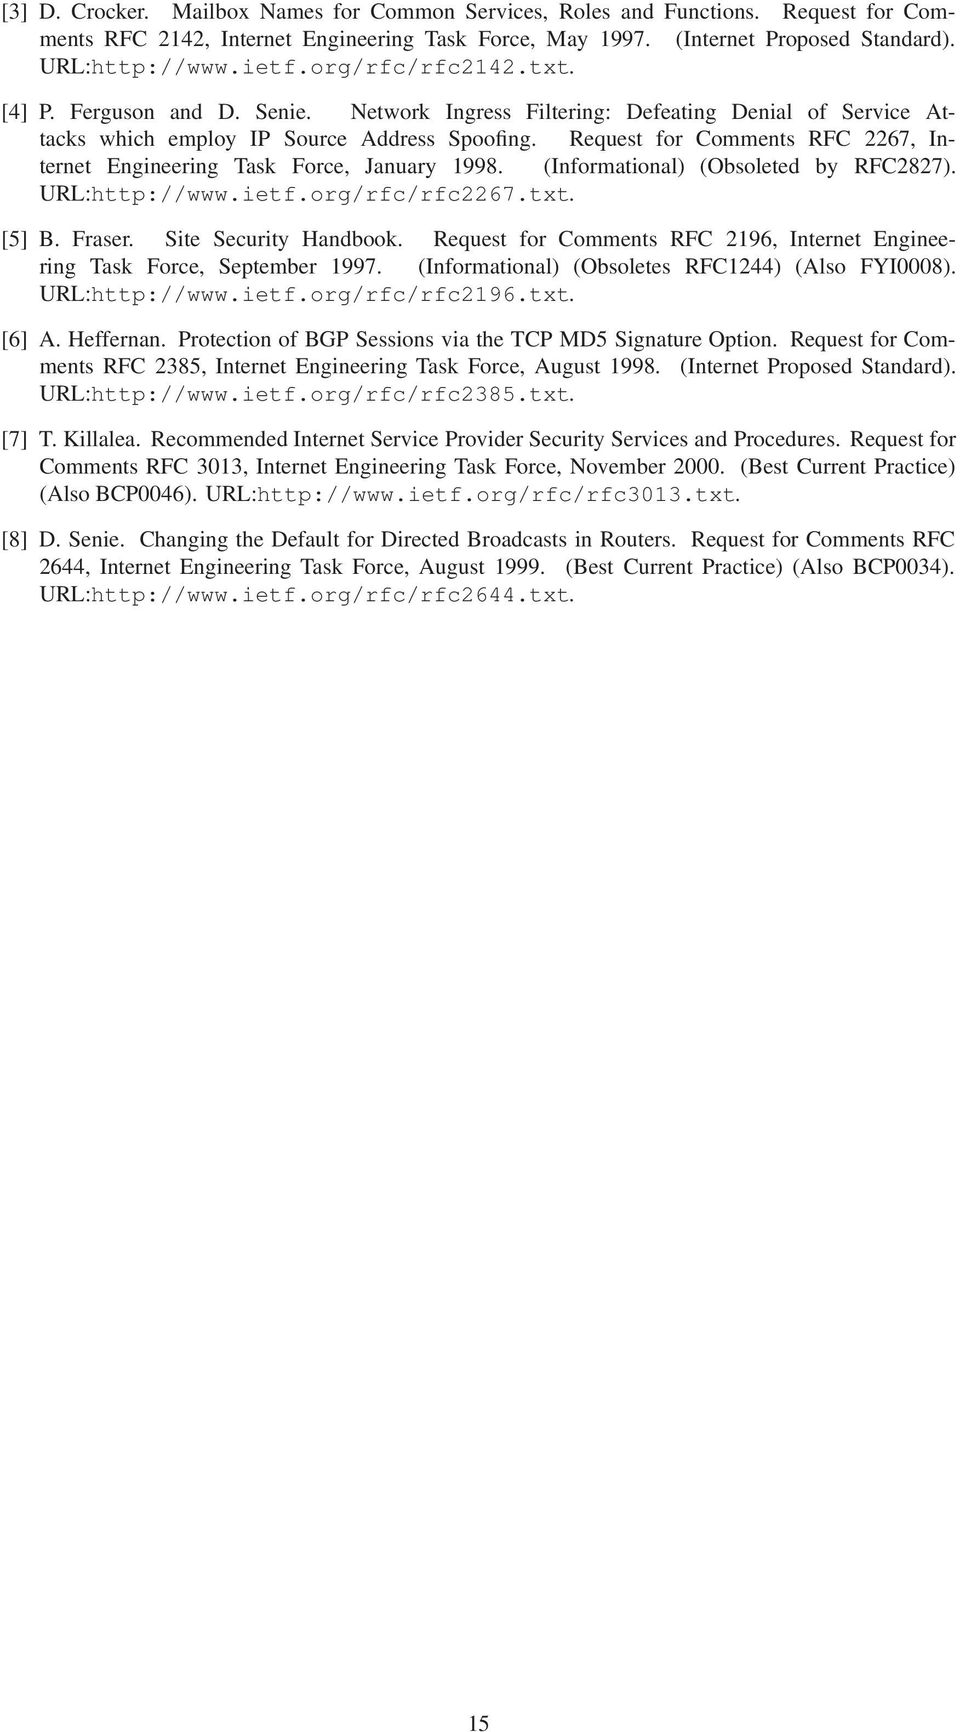 Request for Comments RFC 2267, Internet Engineering Task Force, January 1998. (Informational) (Obsoleted by RFC2827). URL:http://www.ietf.org/rfc/rfc2267.txt. [5] B. Fraser. Site Security Handbook.